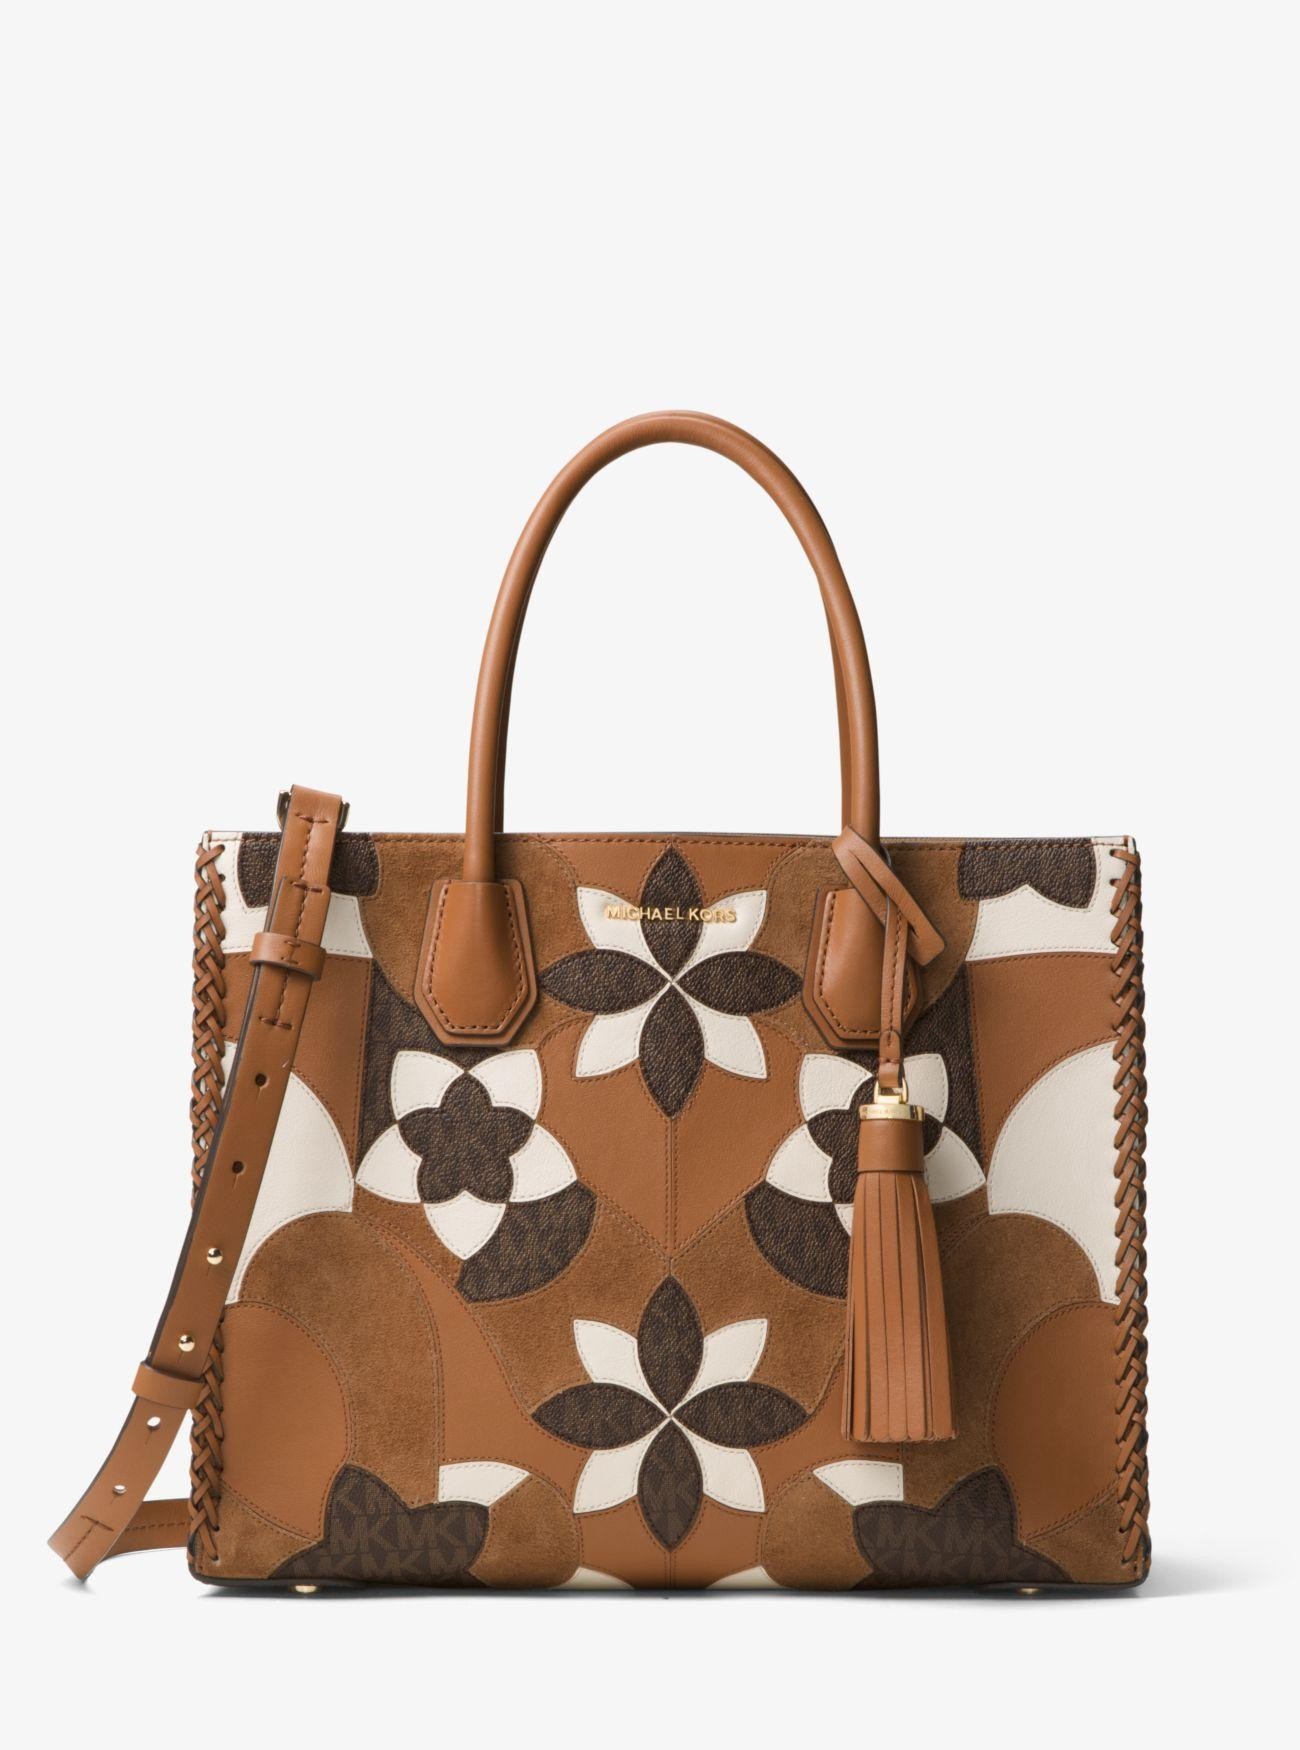 9058311575cc Michael Kors Mercer Large Floral Patchwork Leather Tote - Lyst